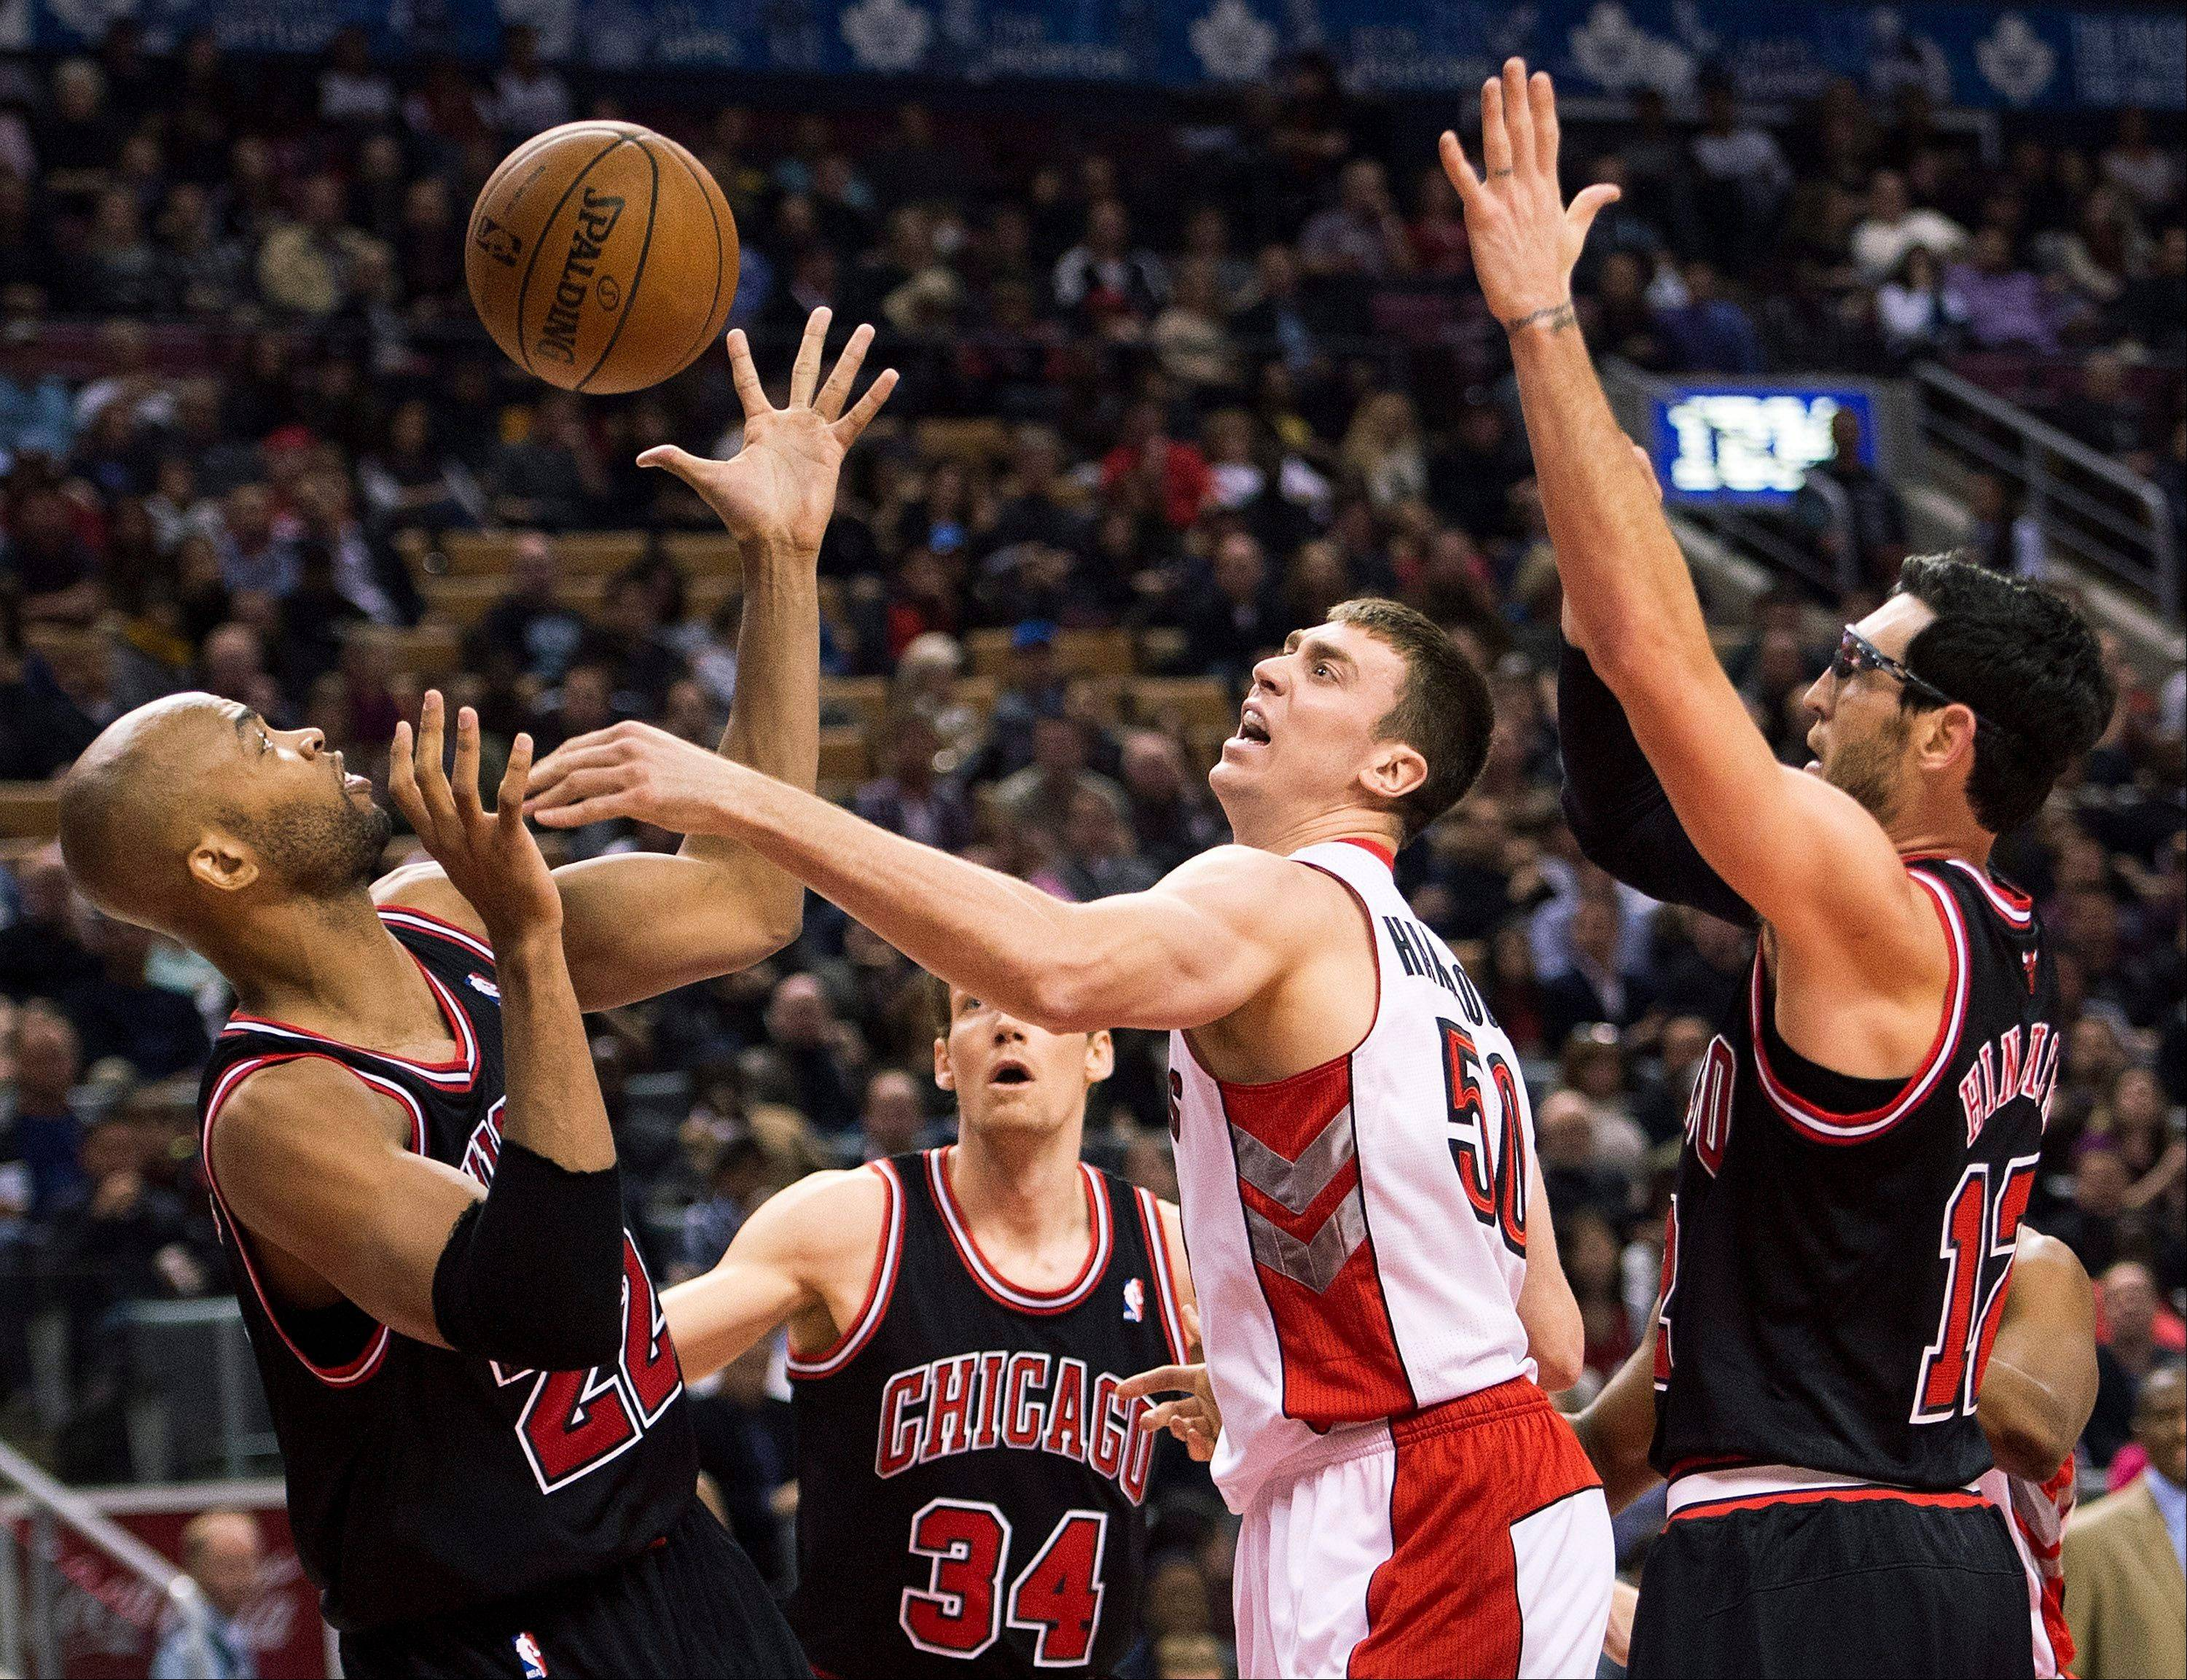 Toronto Raptors forward Tyler Hansbrough, center, battles for the loose ball against Chicago Bulls' Taj Gibson, left, and Kirk Hinrich, right, during first-half NBA basketball game action in Toronto, Friday, Nov. 15, 2013.